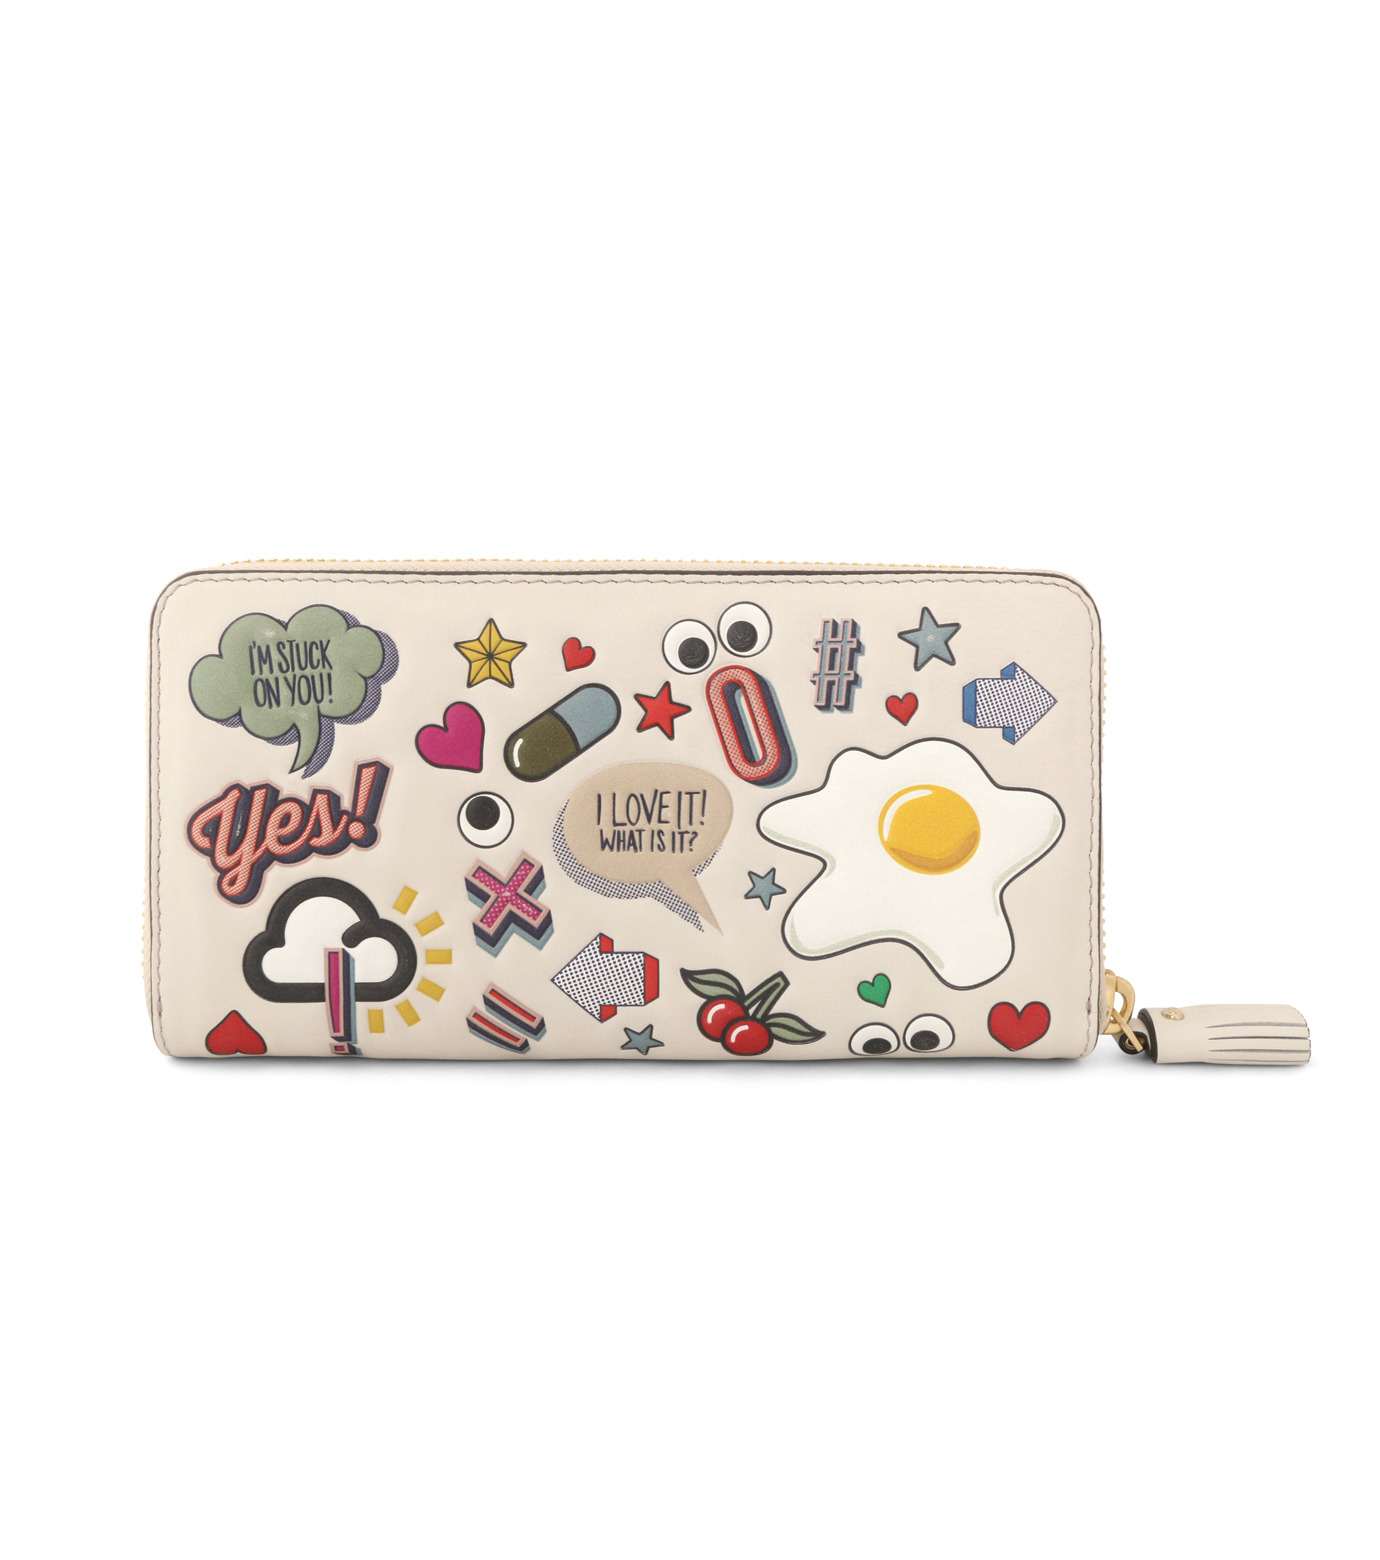 Anya Hindmarch(アニヤハインドマーチ)のLarge Zip Round Wallet All Over Wink-WHITE-924306-5 拡大詳細画像3